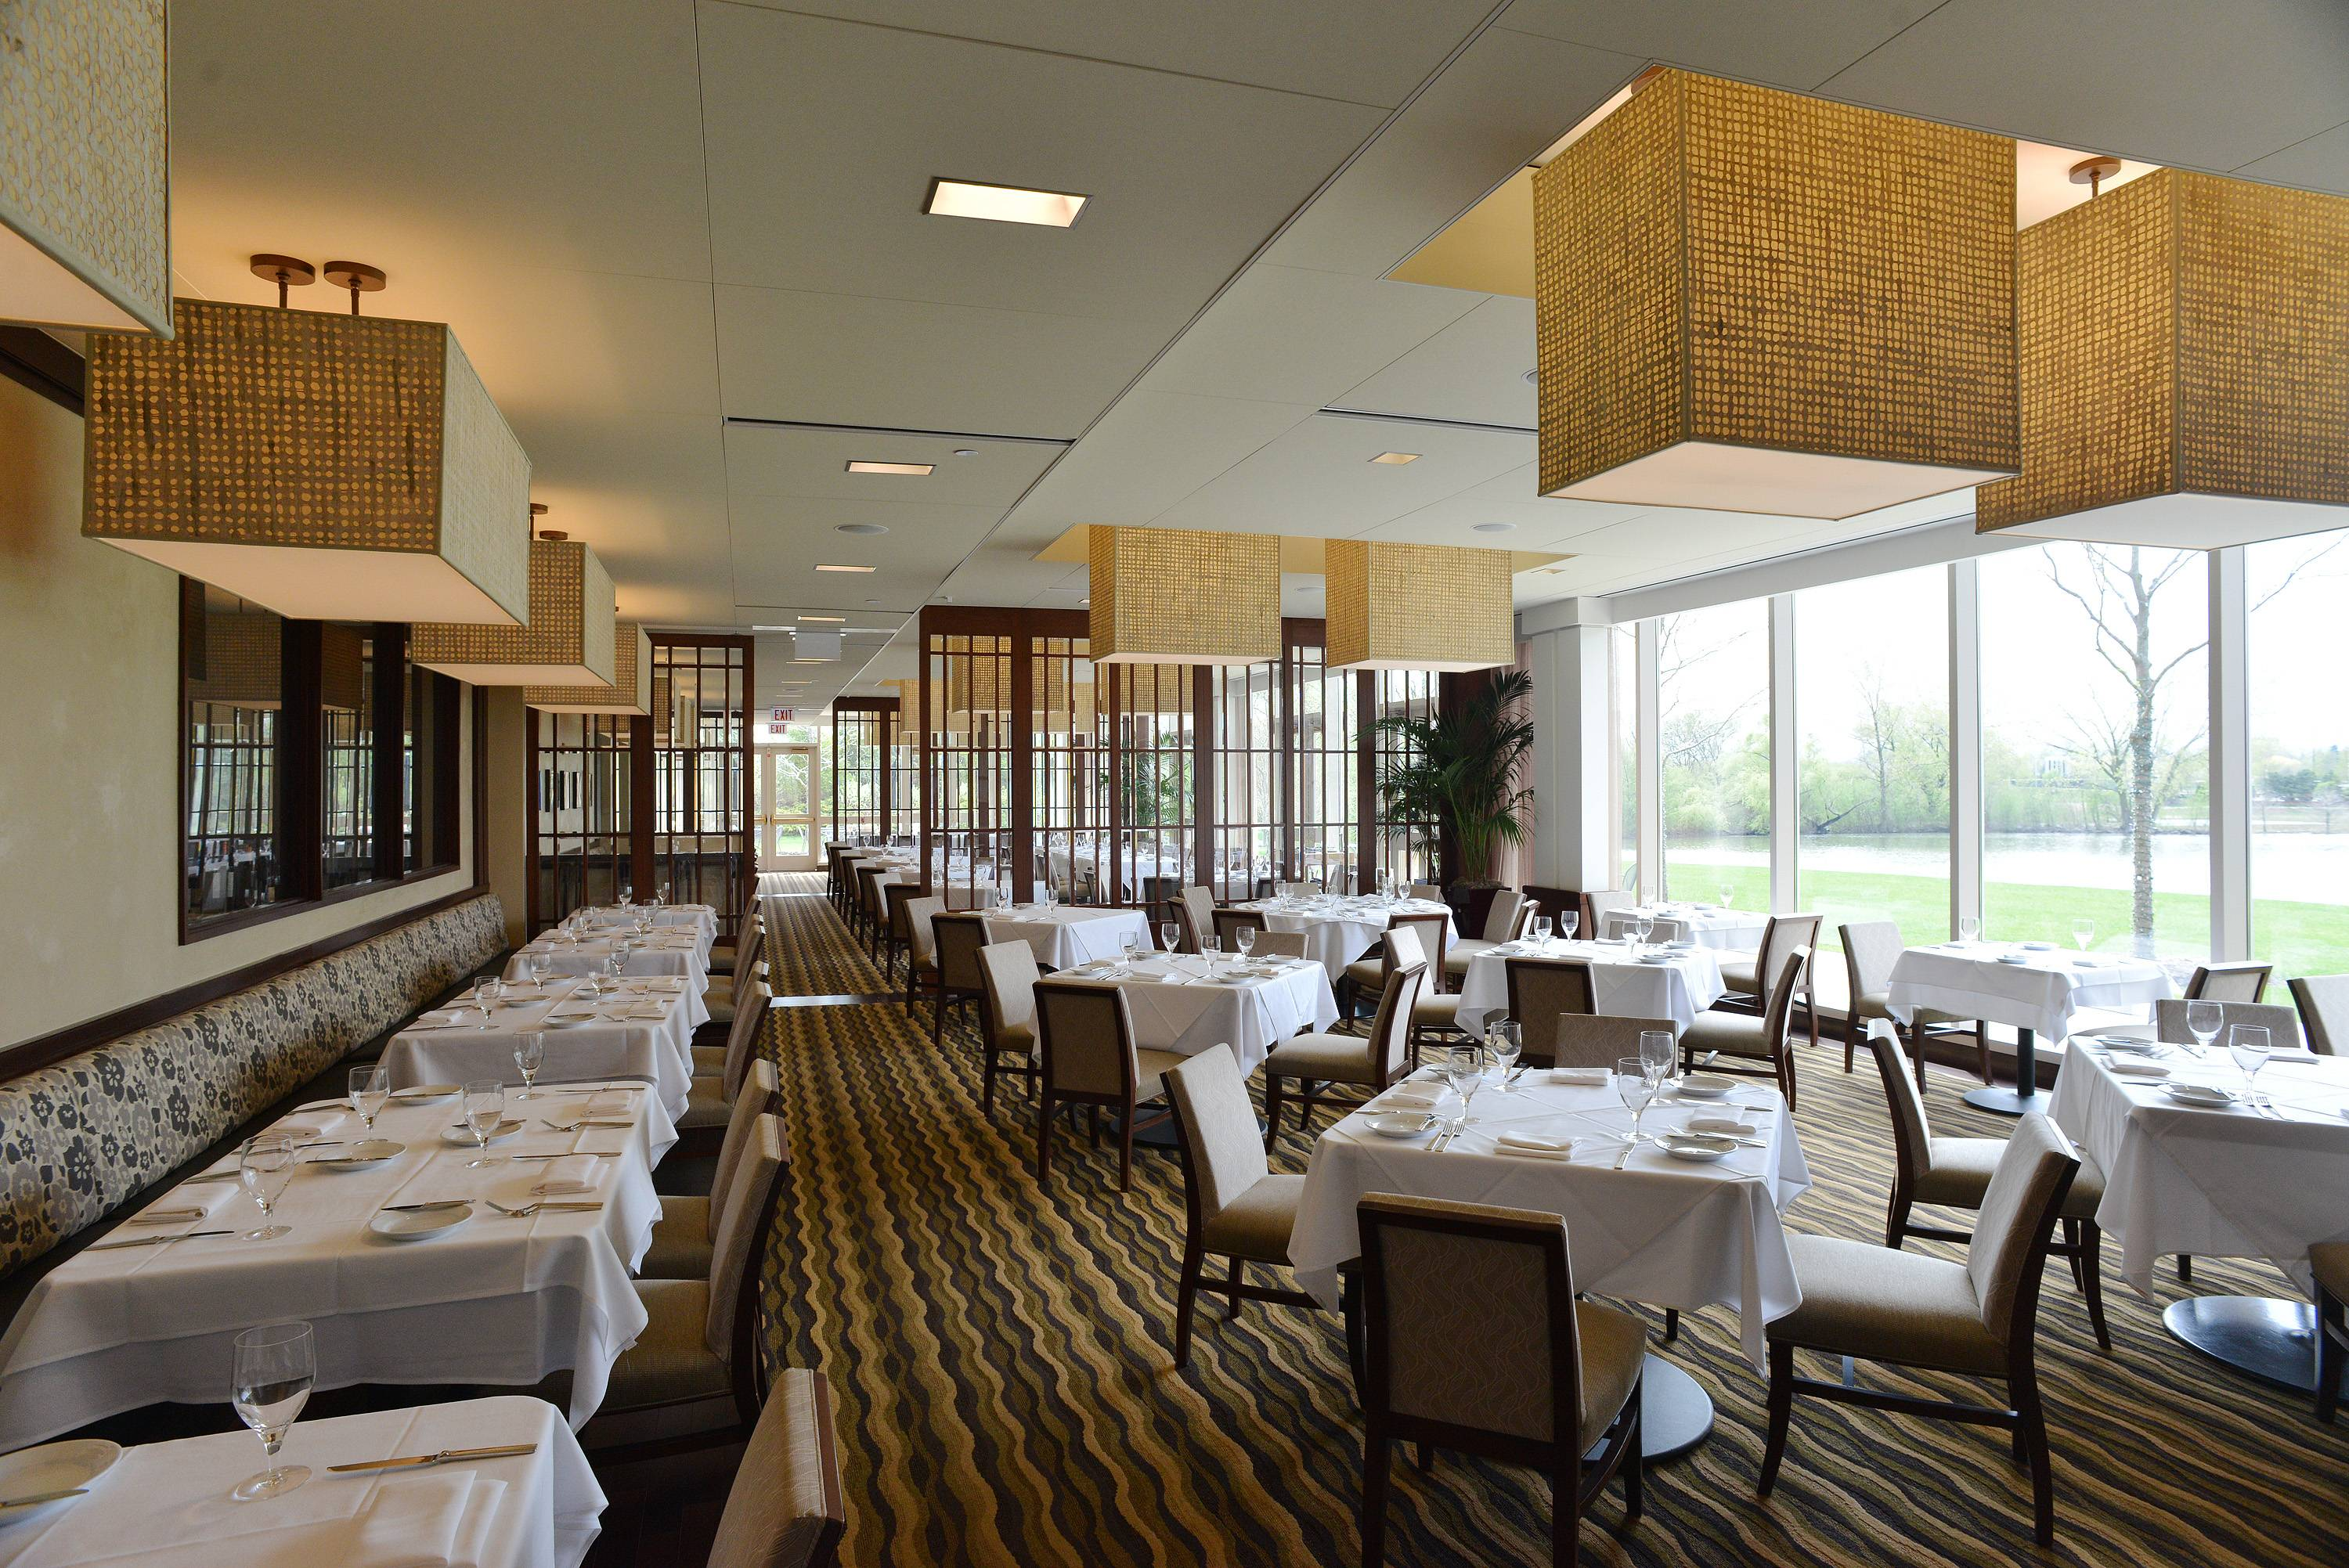 Financial losses at the Waterleaf Restaurant have several challengers in the College of DuPage board race calling for greater oversight at the school.